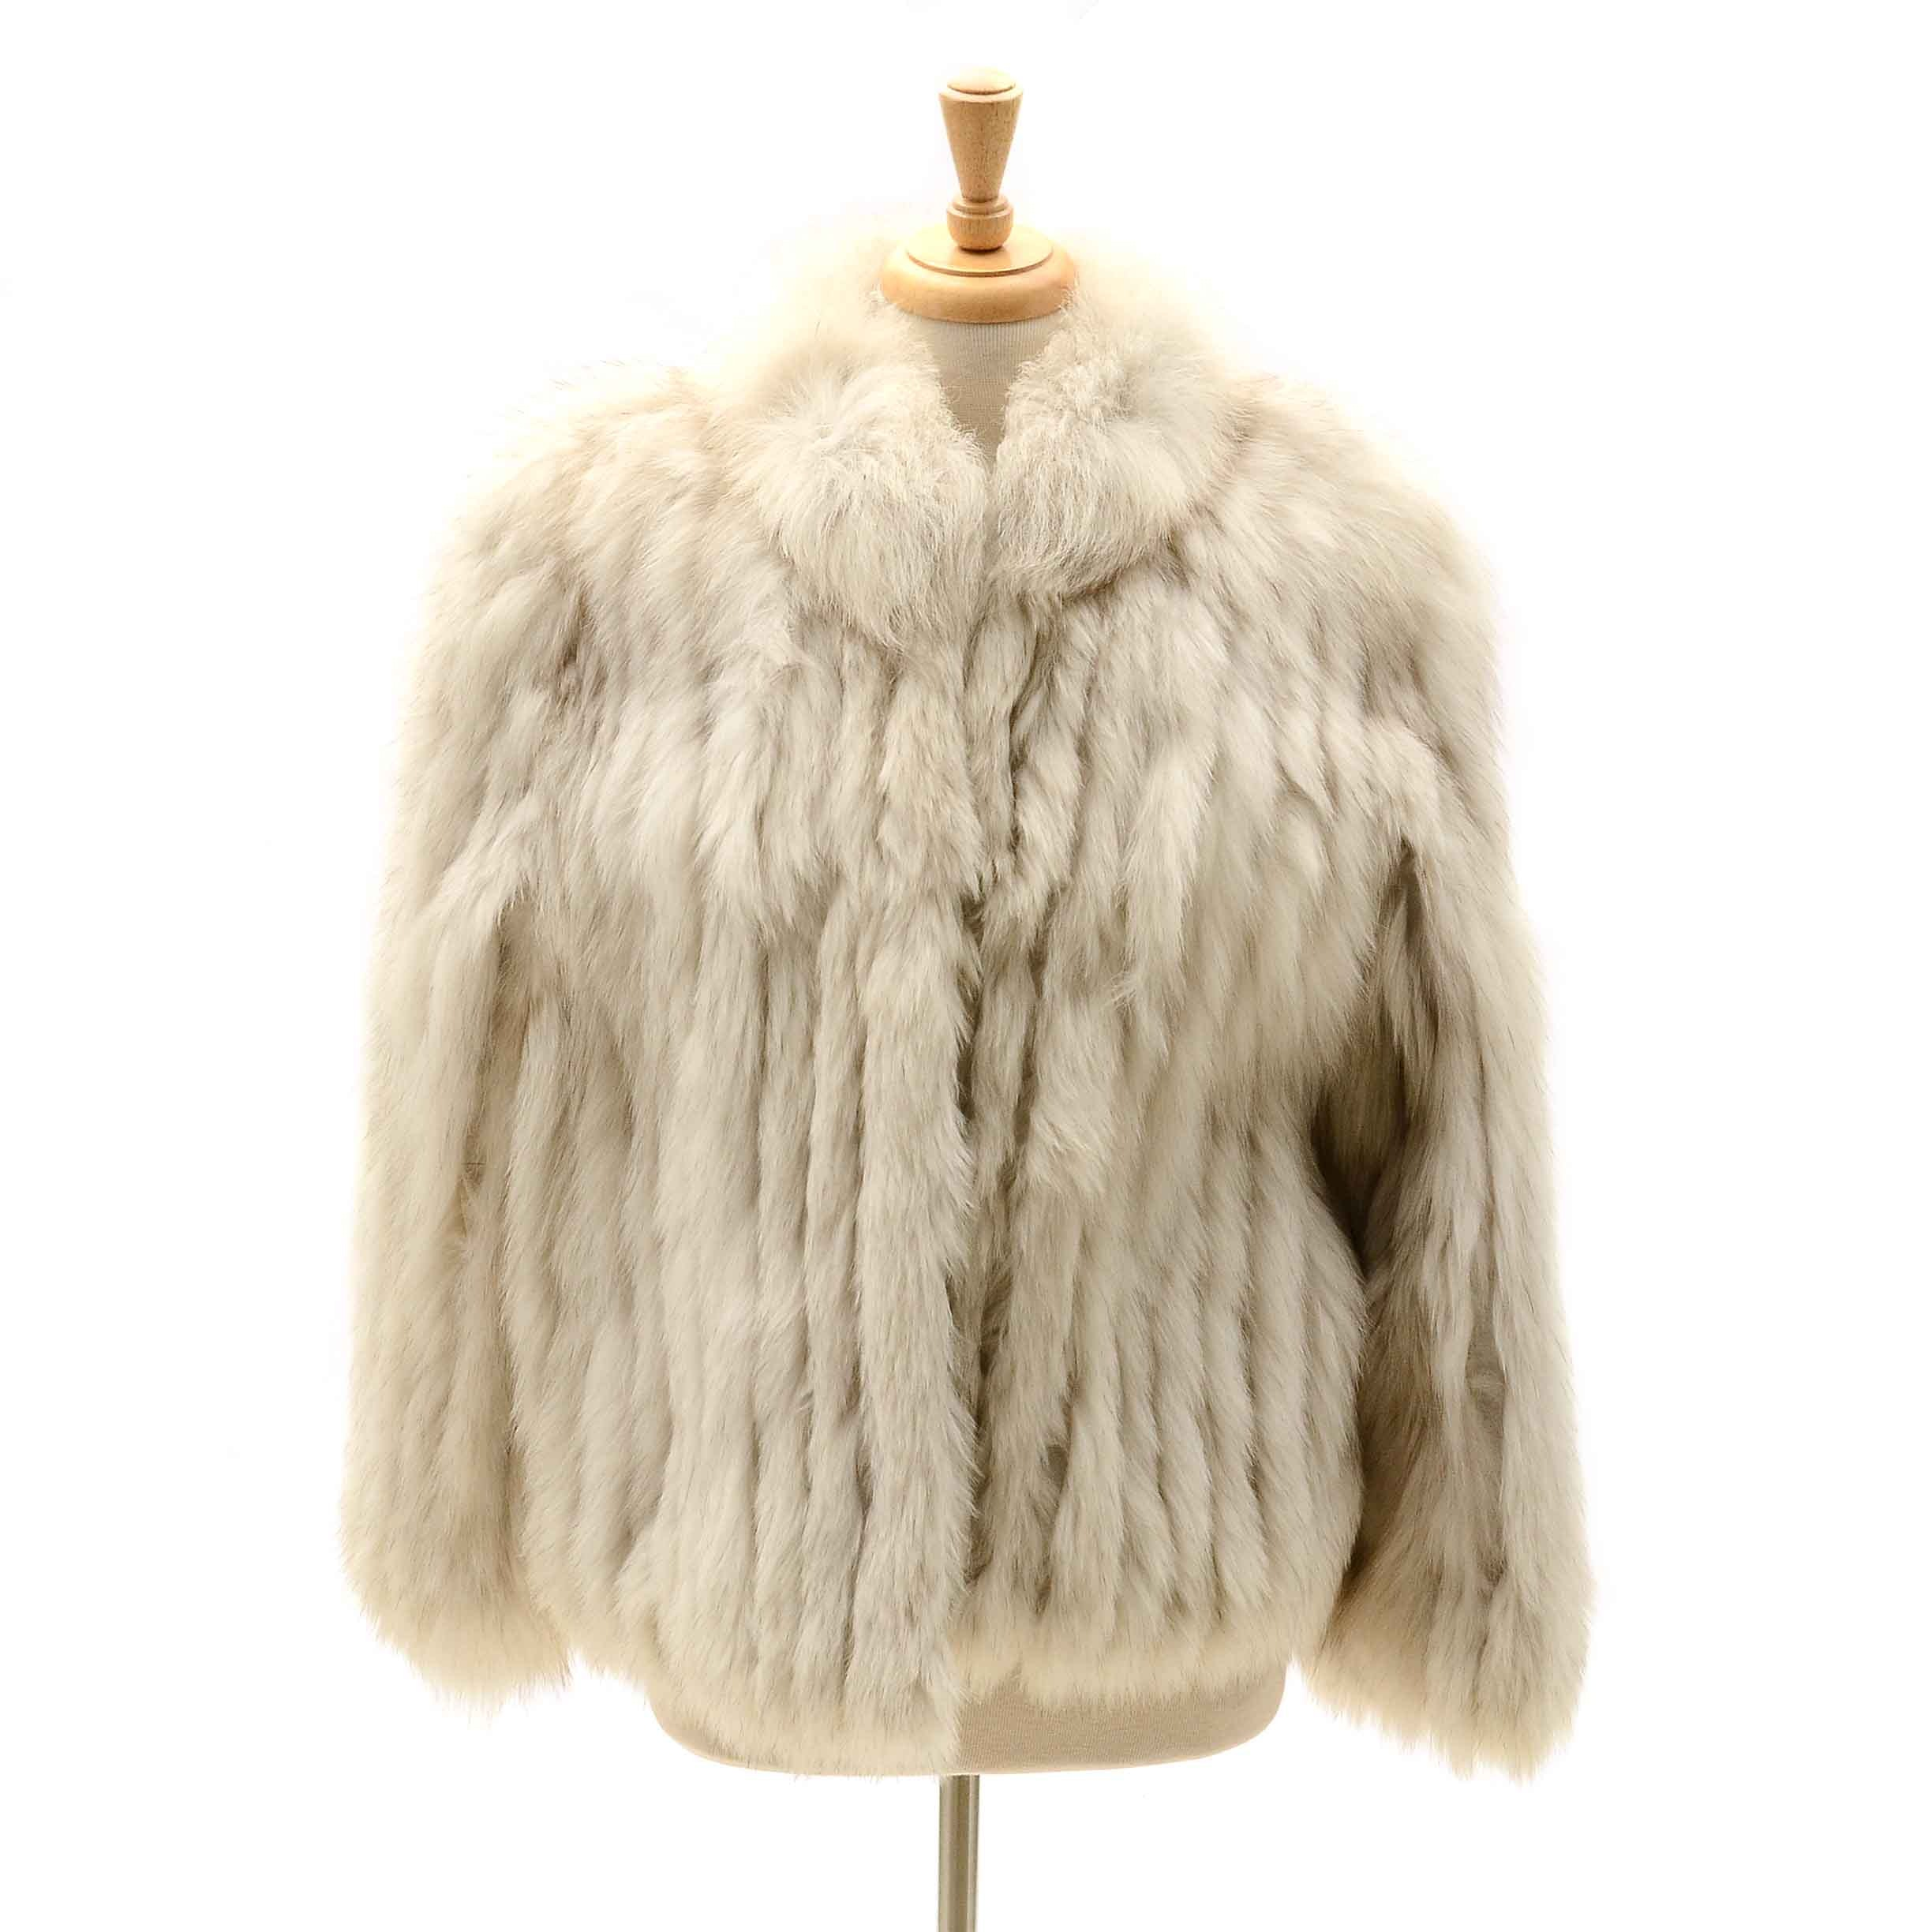 Vintage White Fox Fur Coat